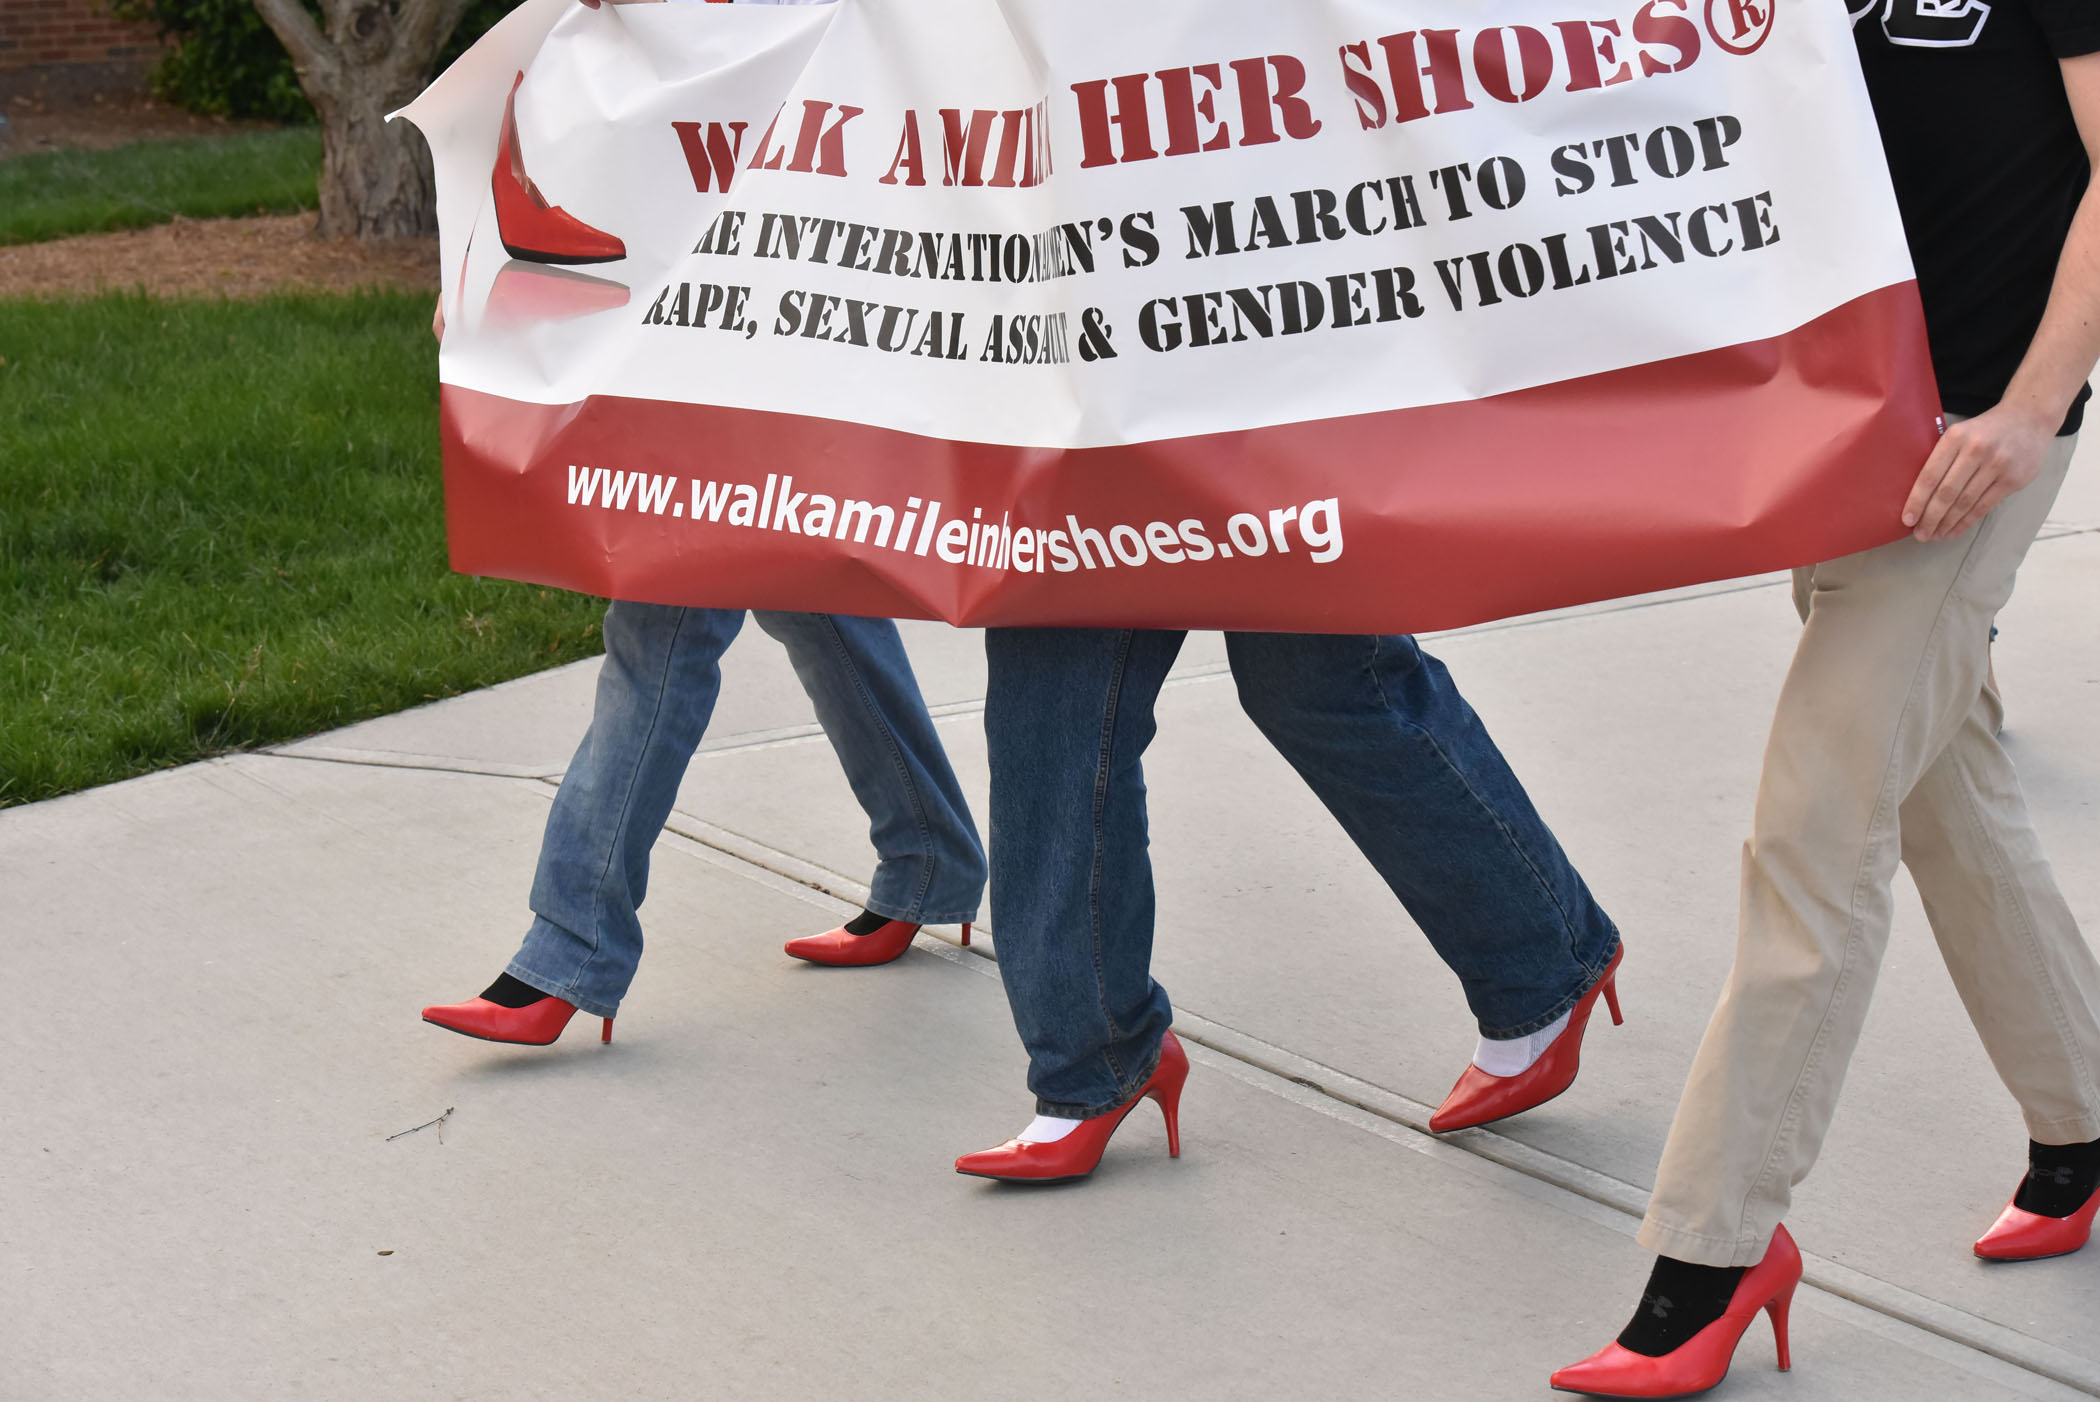 Walk a mile in her shoes_308913